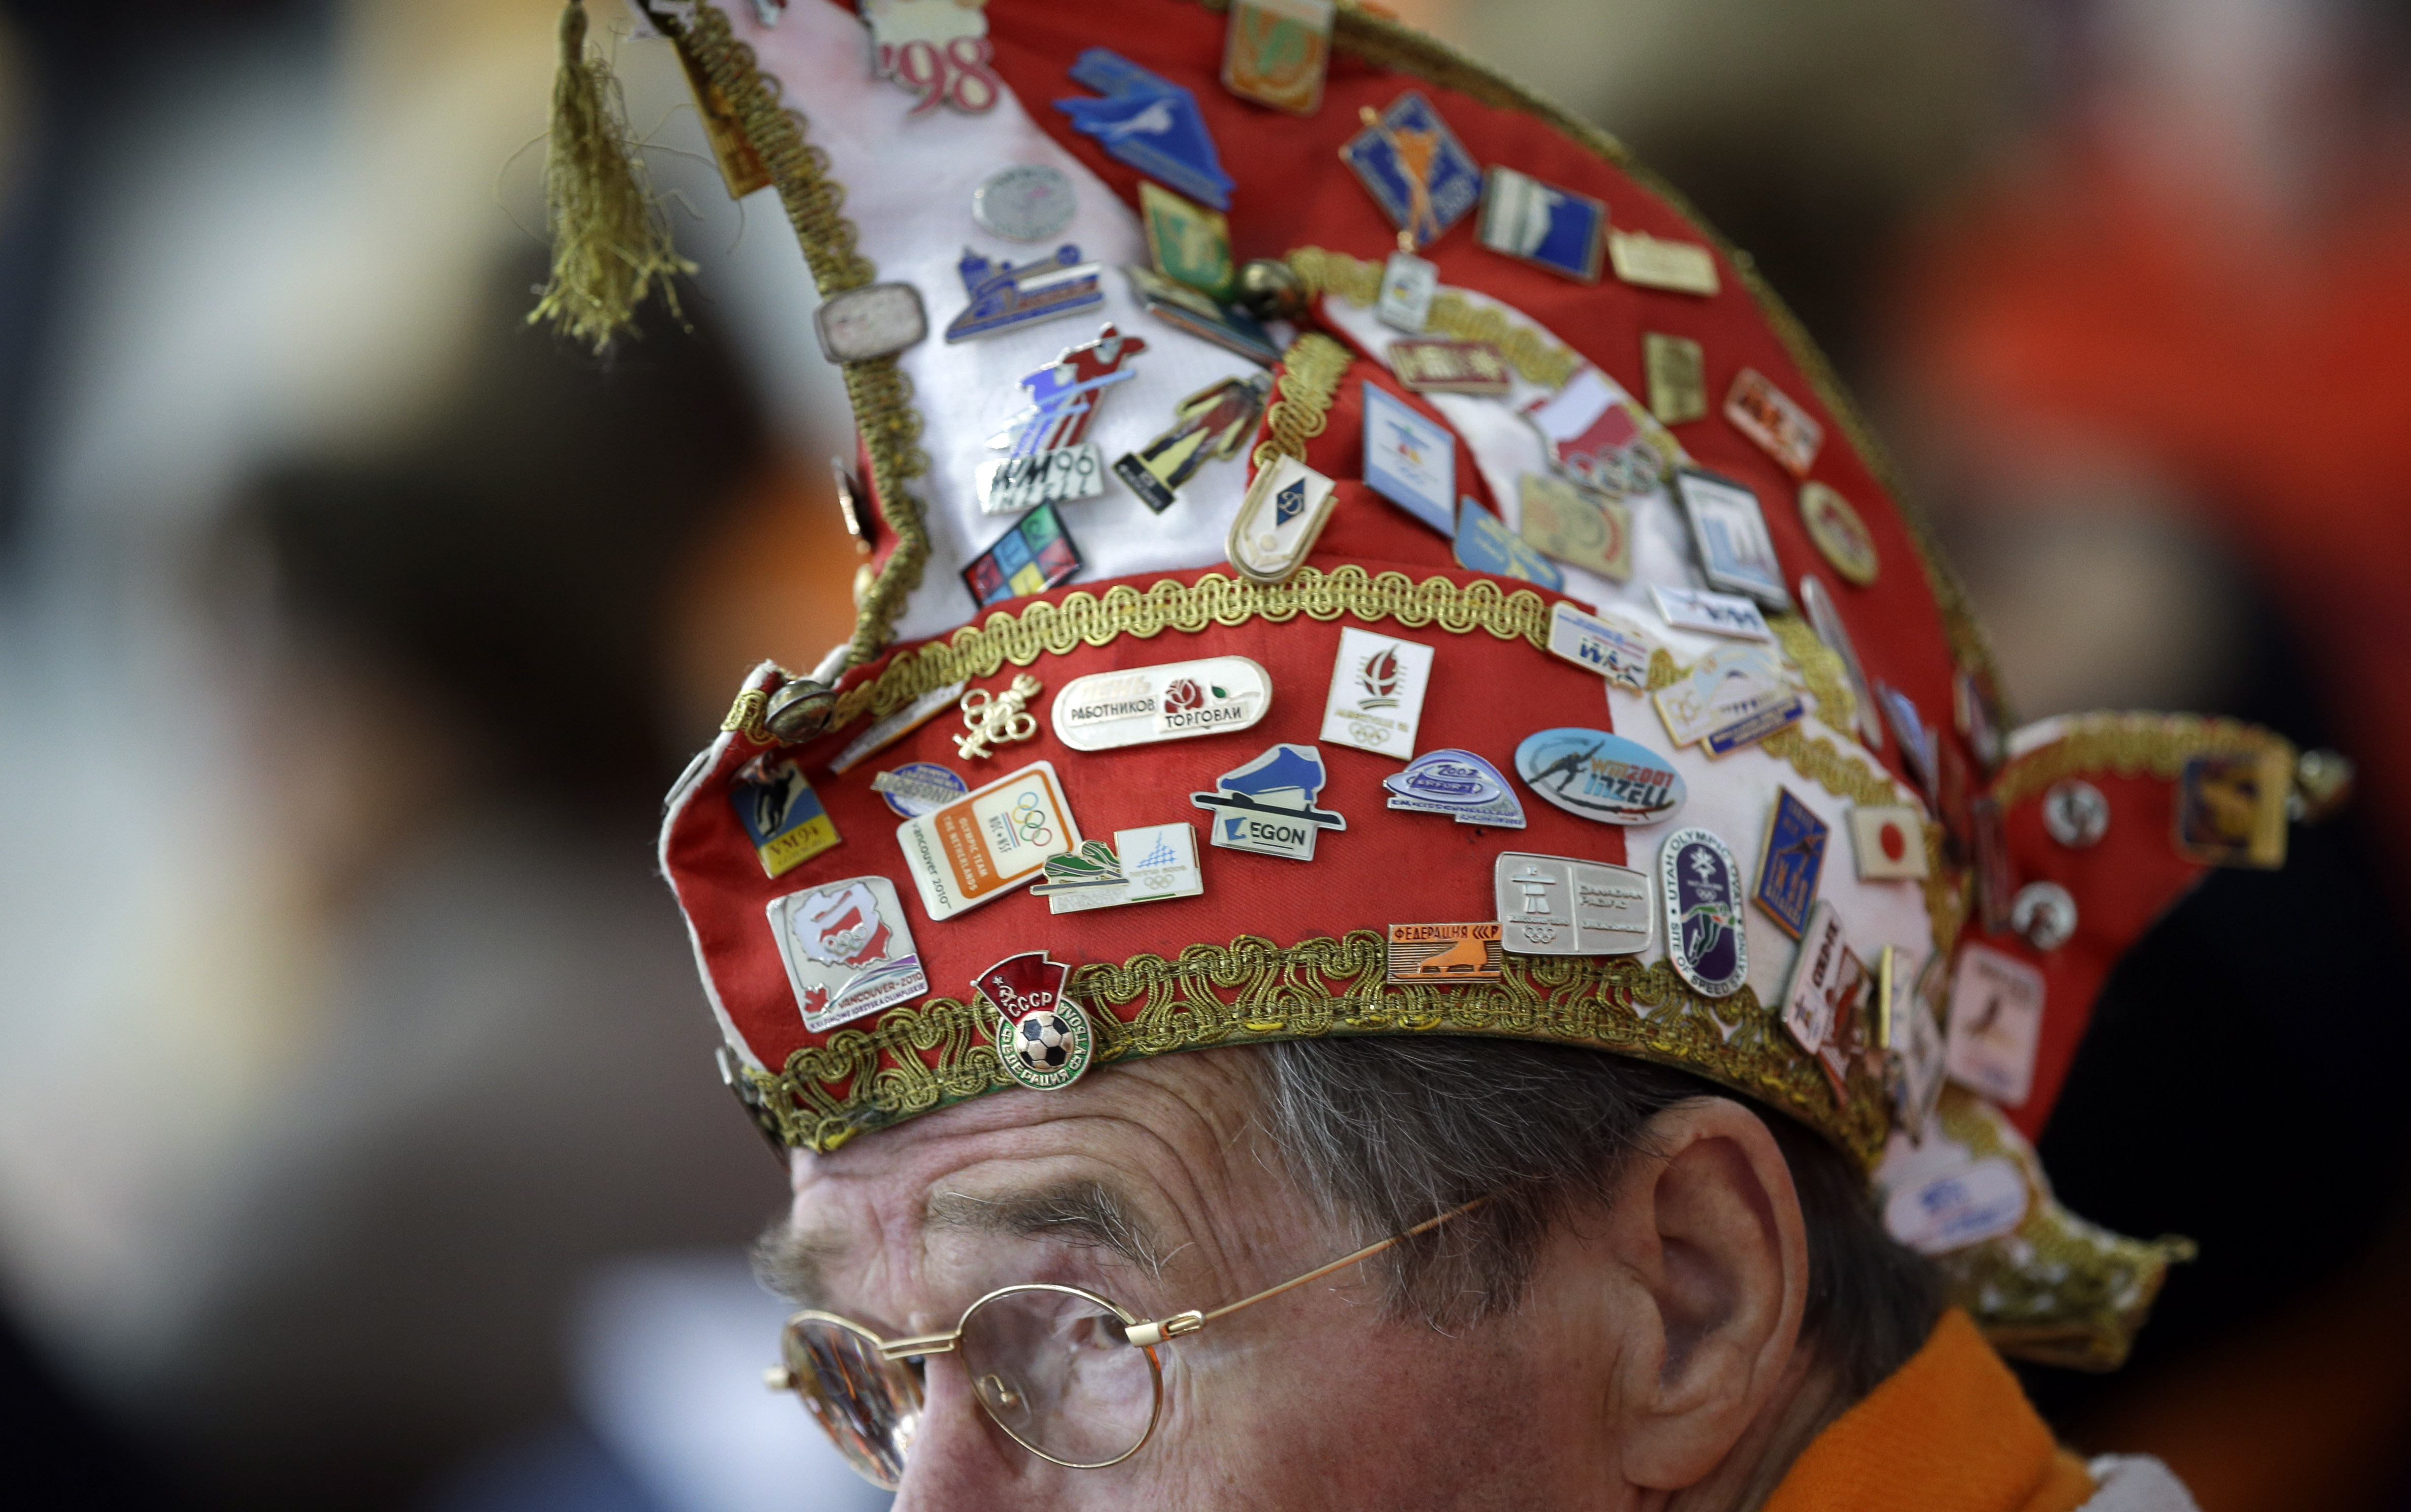 A Dutch skating fan, his hat filled with Olympic pins, watches the women's 1,000-meter speedskating race.